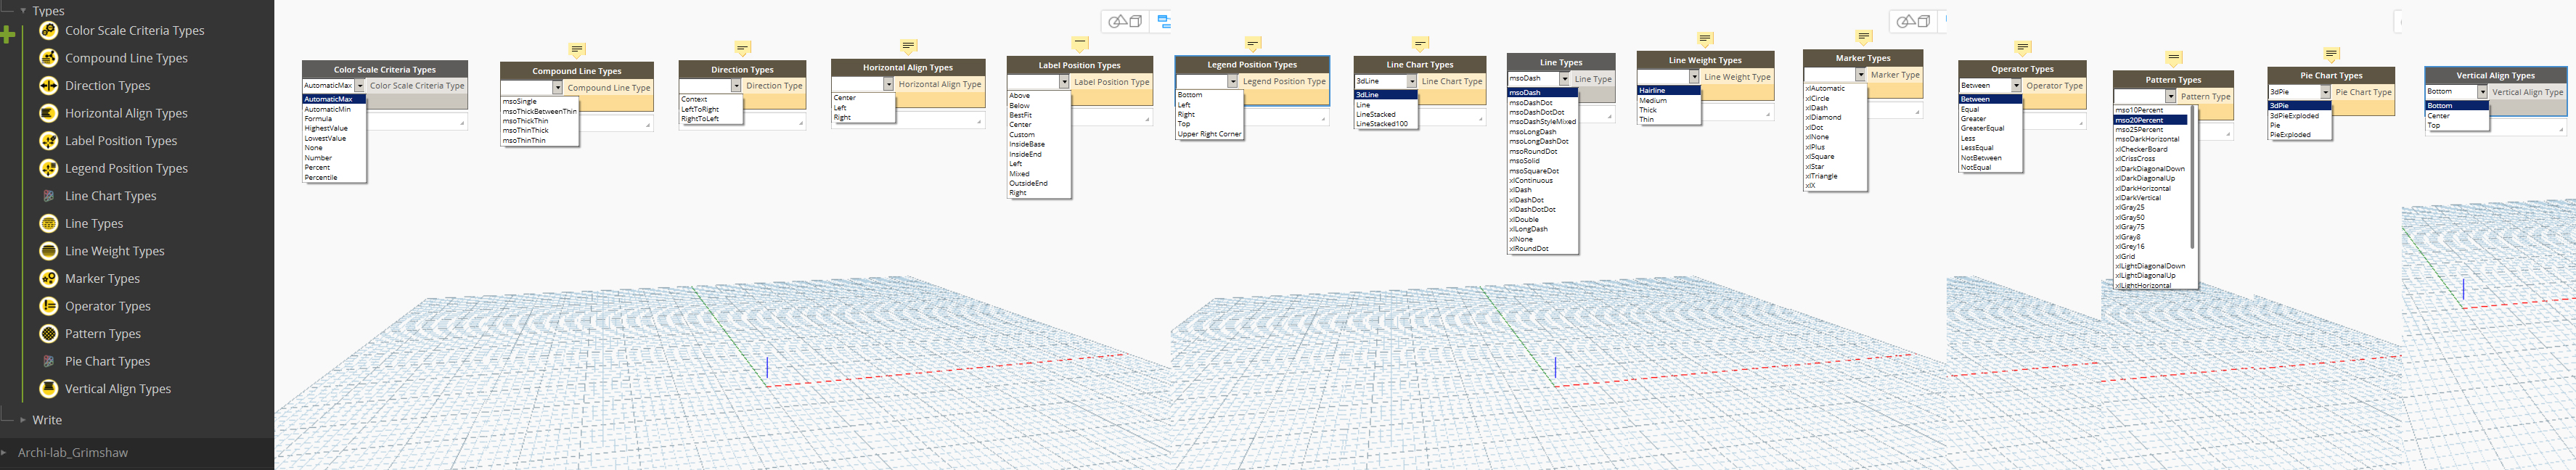 bumblebee – dynamo and excel interop | archi-lab